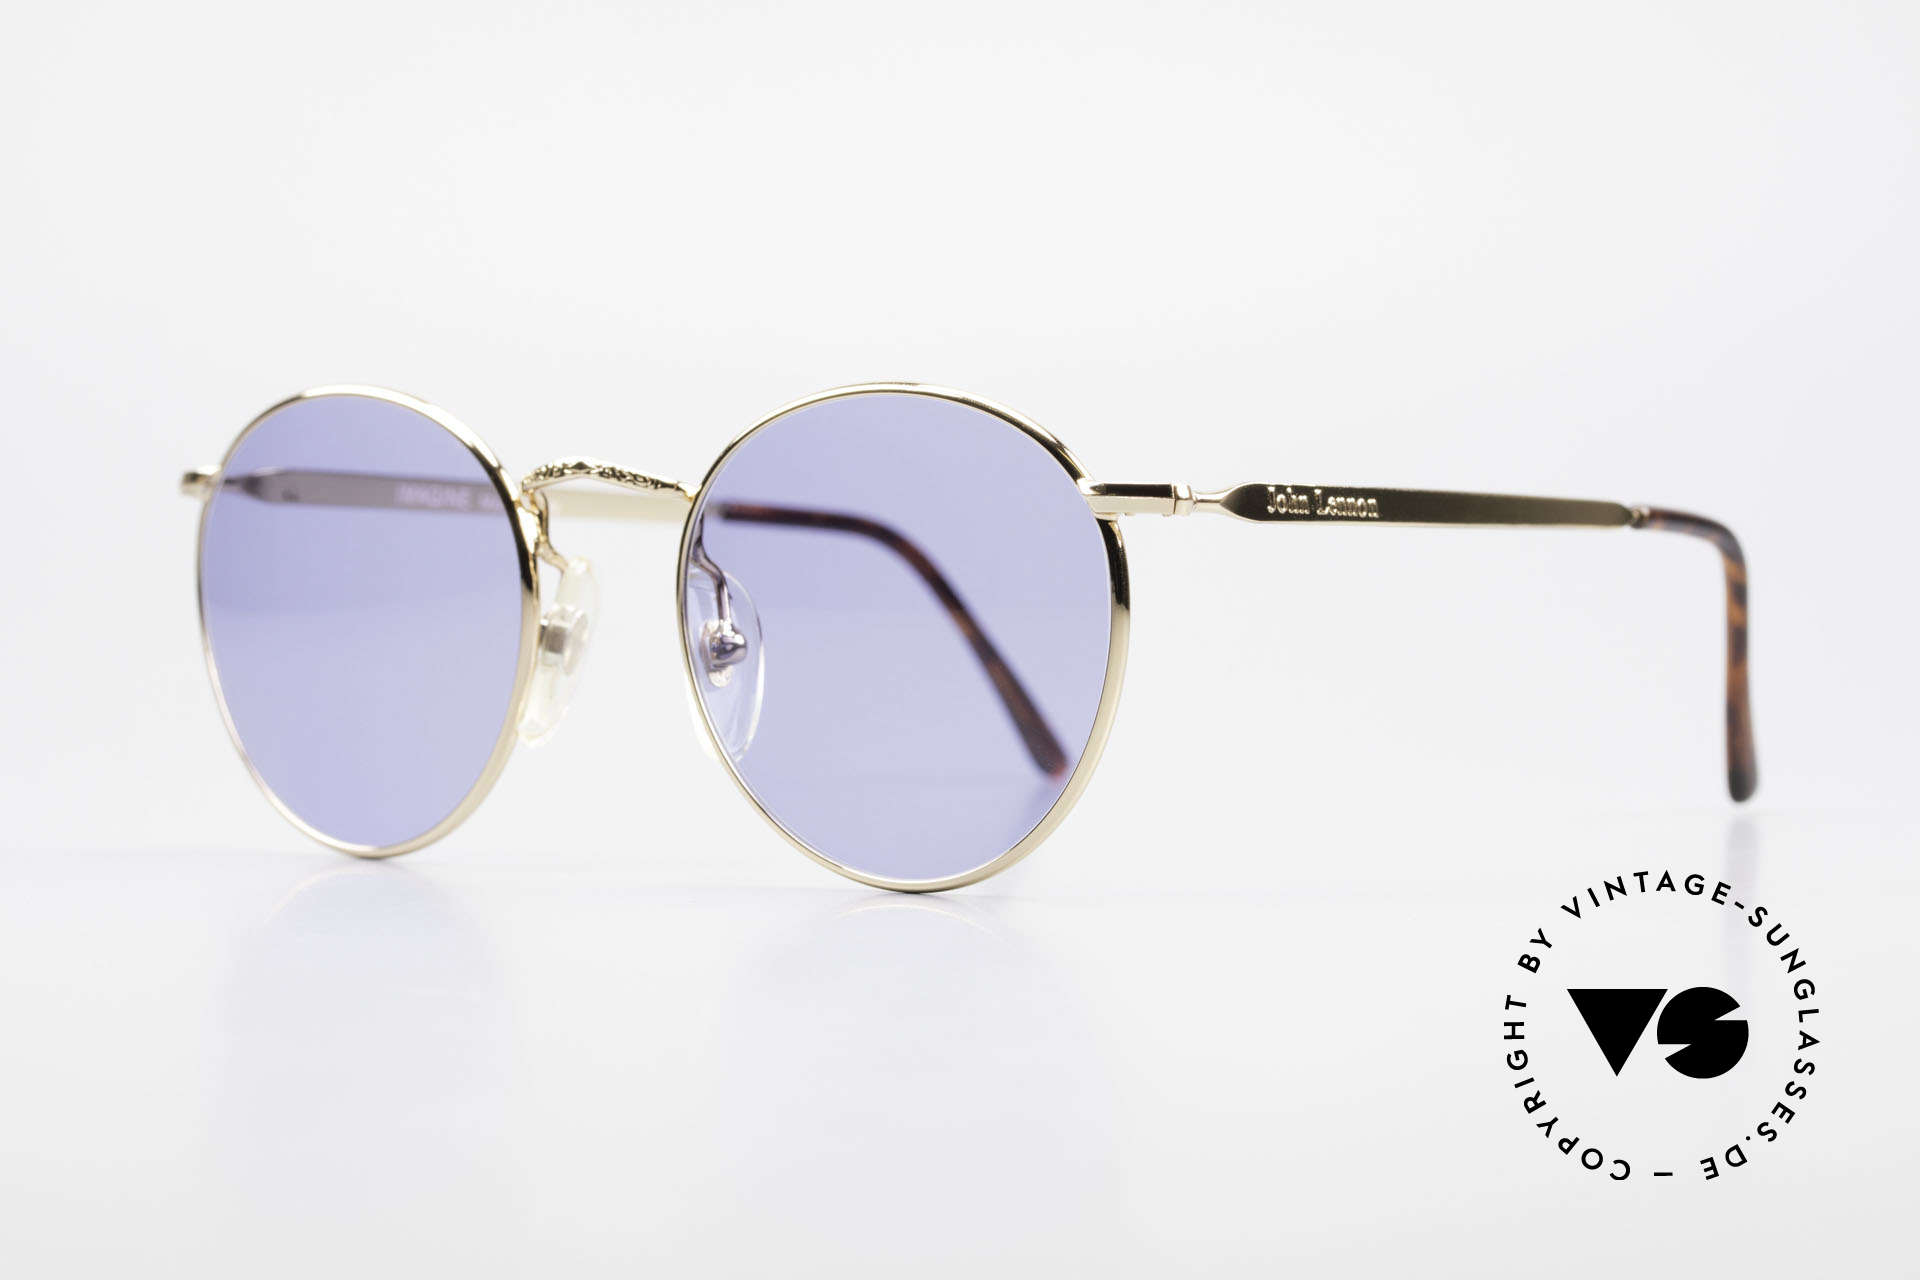 John Lennon - Imagine Original John Lennon Glasses, all models named after famous J.Lennon / Beatles songs, Made for Men and Women